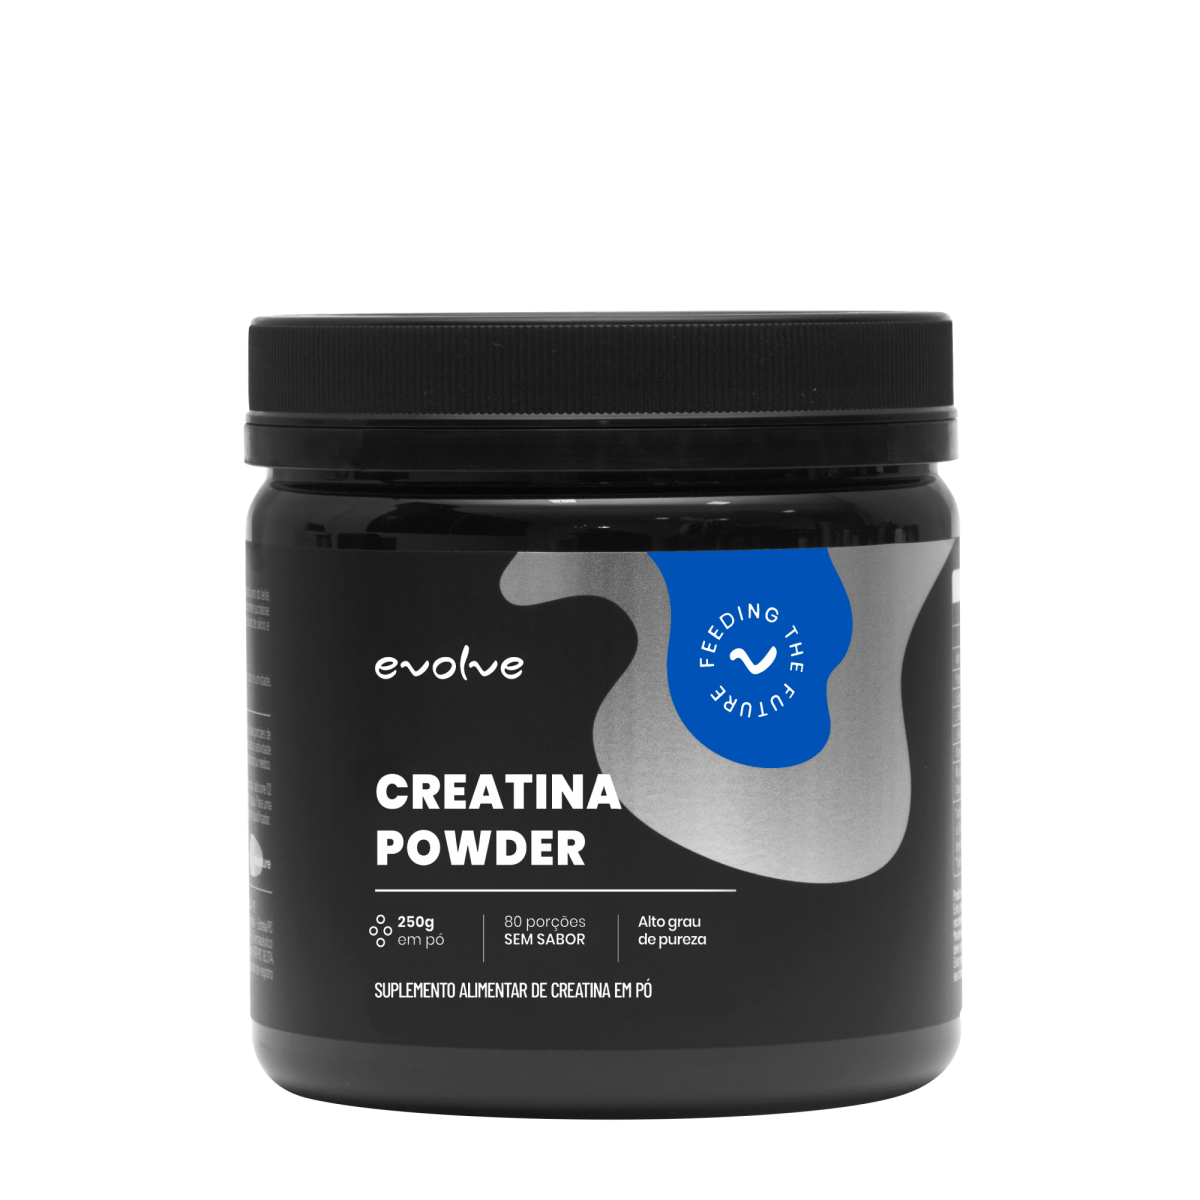 Foto do produto Creatina Powder